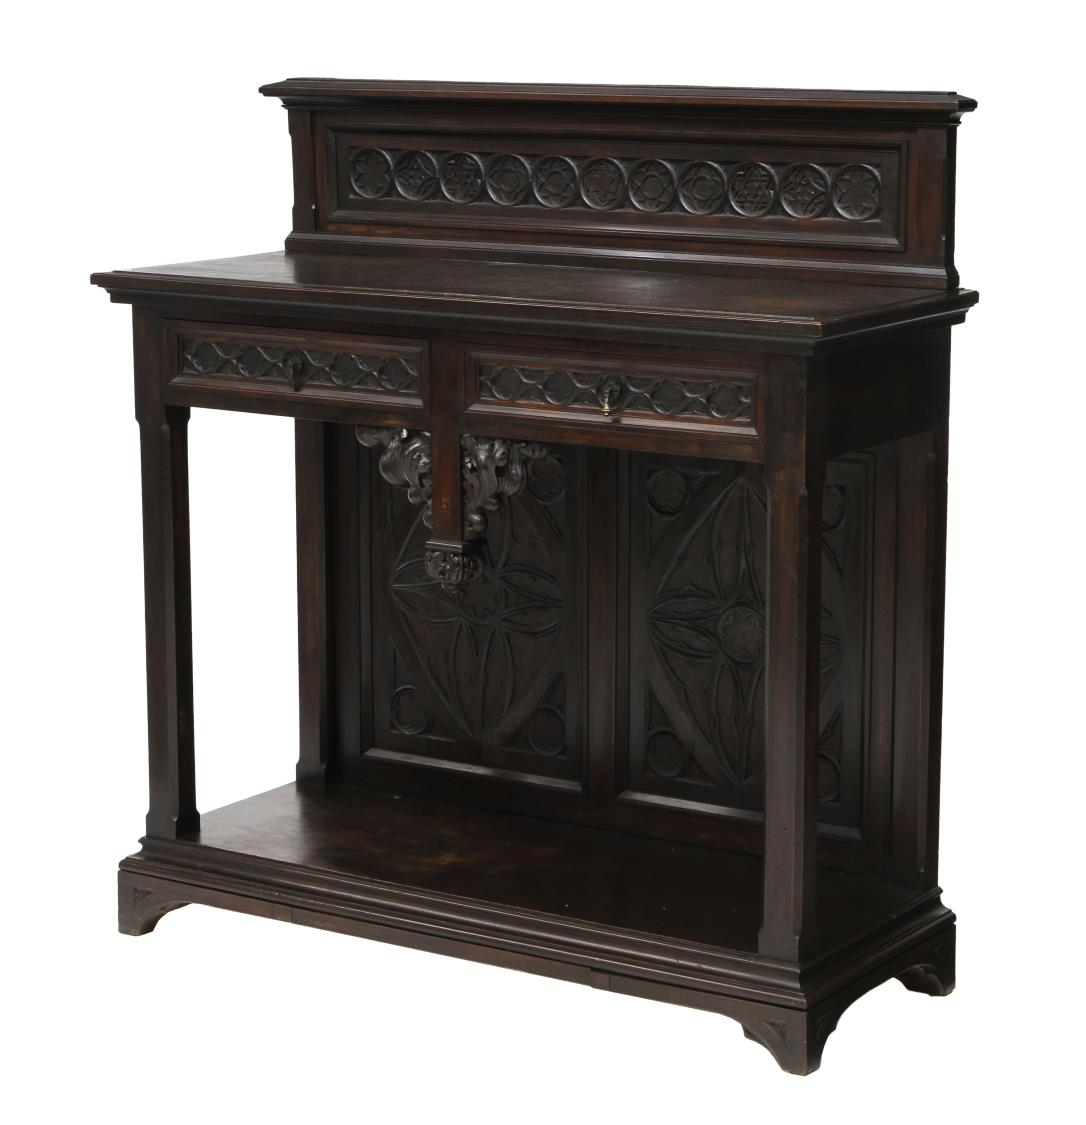 french gothic style server special italian mid century design antiques estates auction day. Black Bedroom Furniture Sets. Home Design Ideas